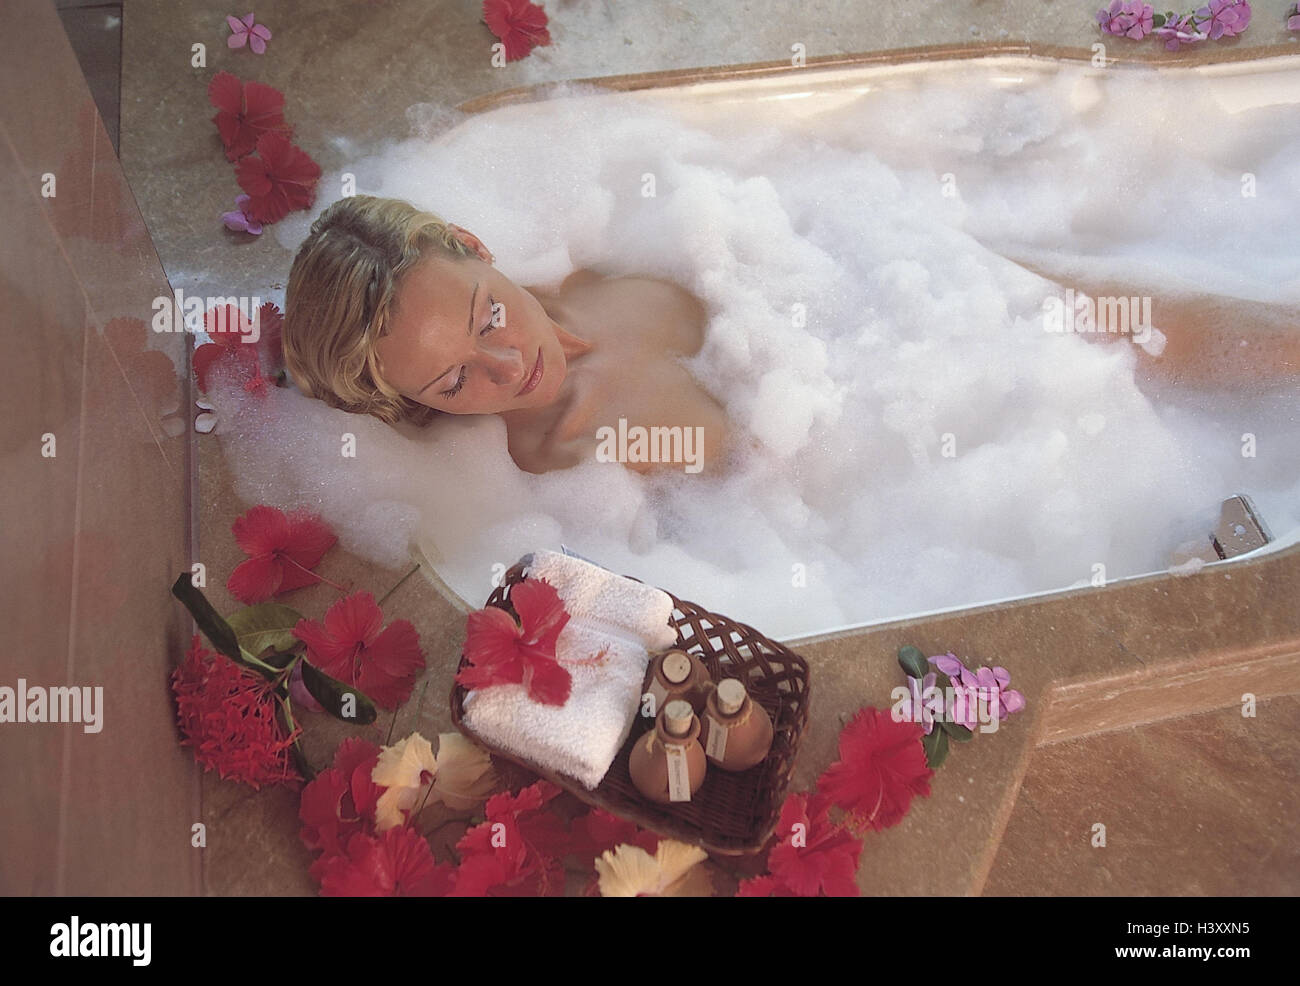 Badezimmer Deko Pastell Bad Essenz Stockfotos Bad Essenz Bilder Alamy